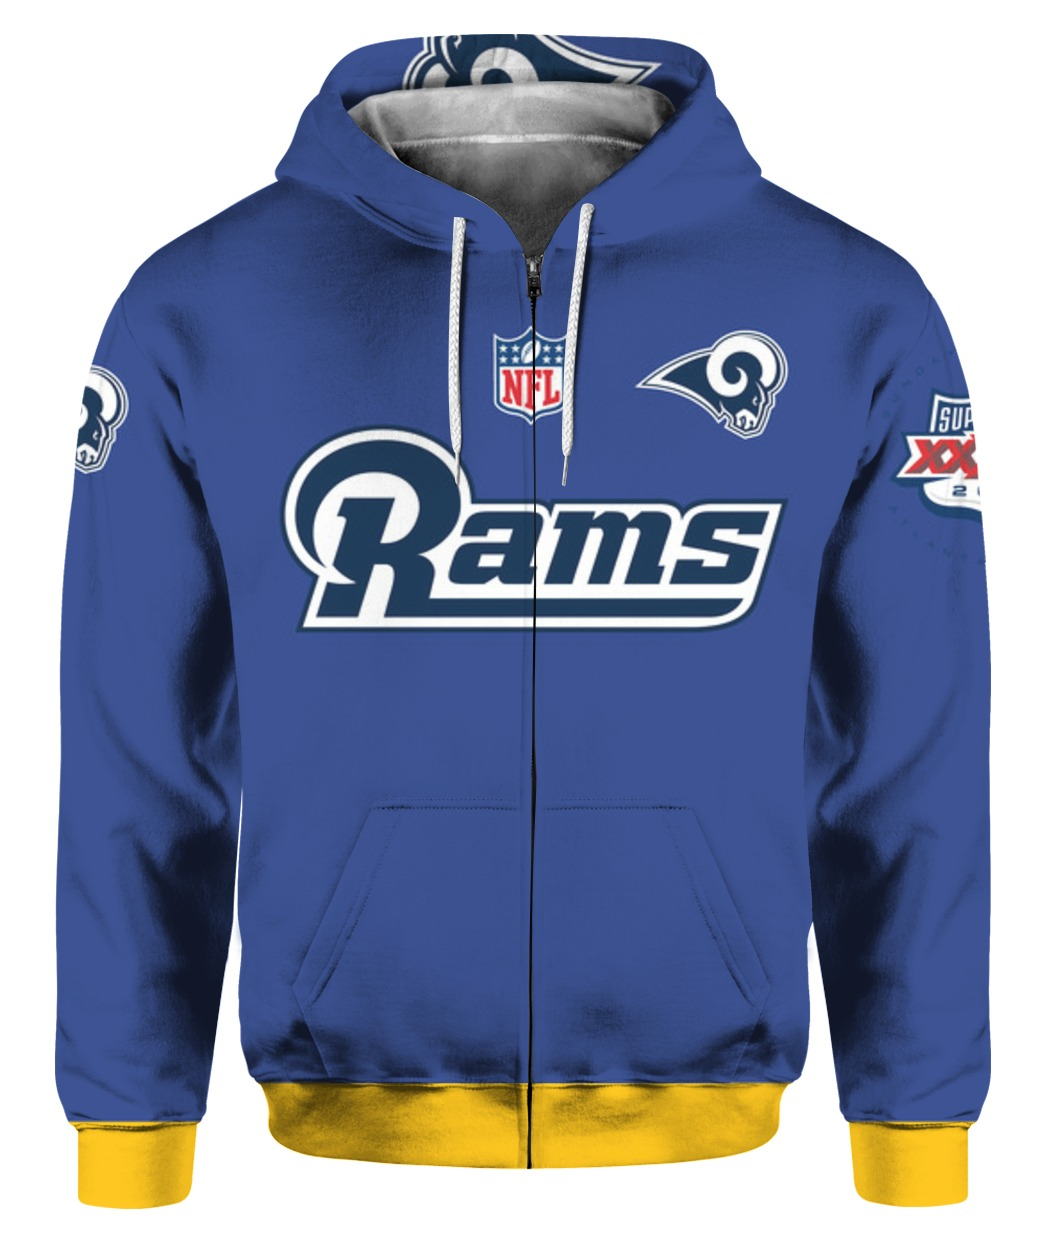 Stand for the flag kneel for the cross los angeles rams all over print zip hoodie